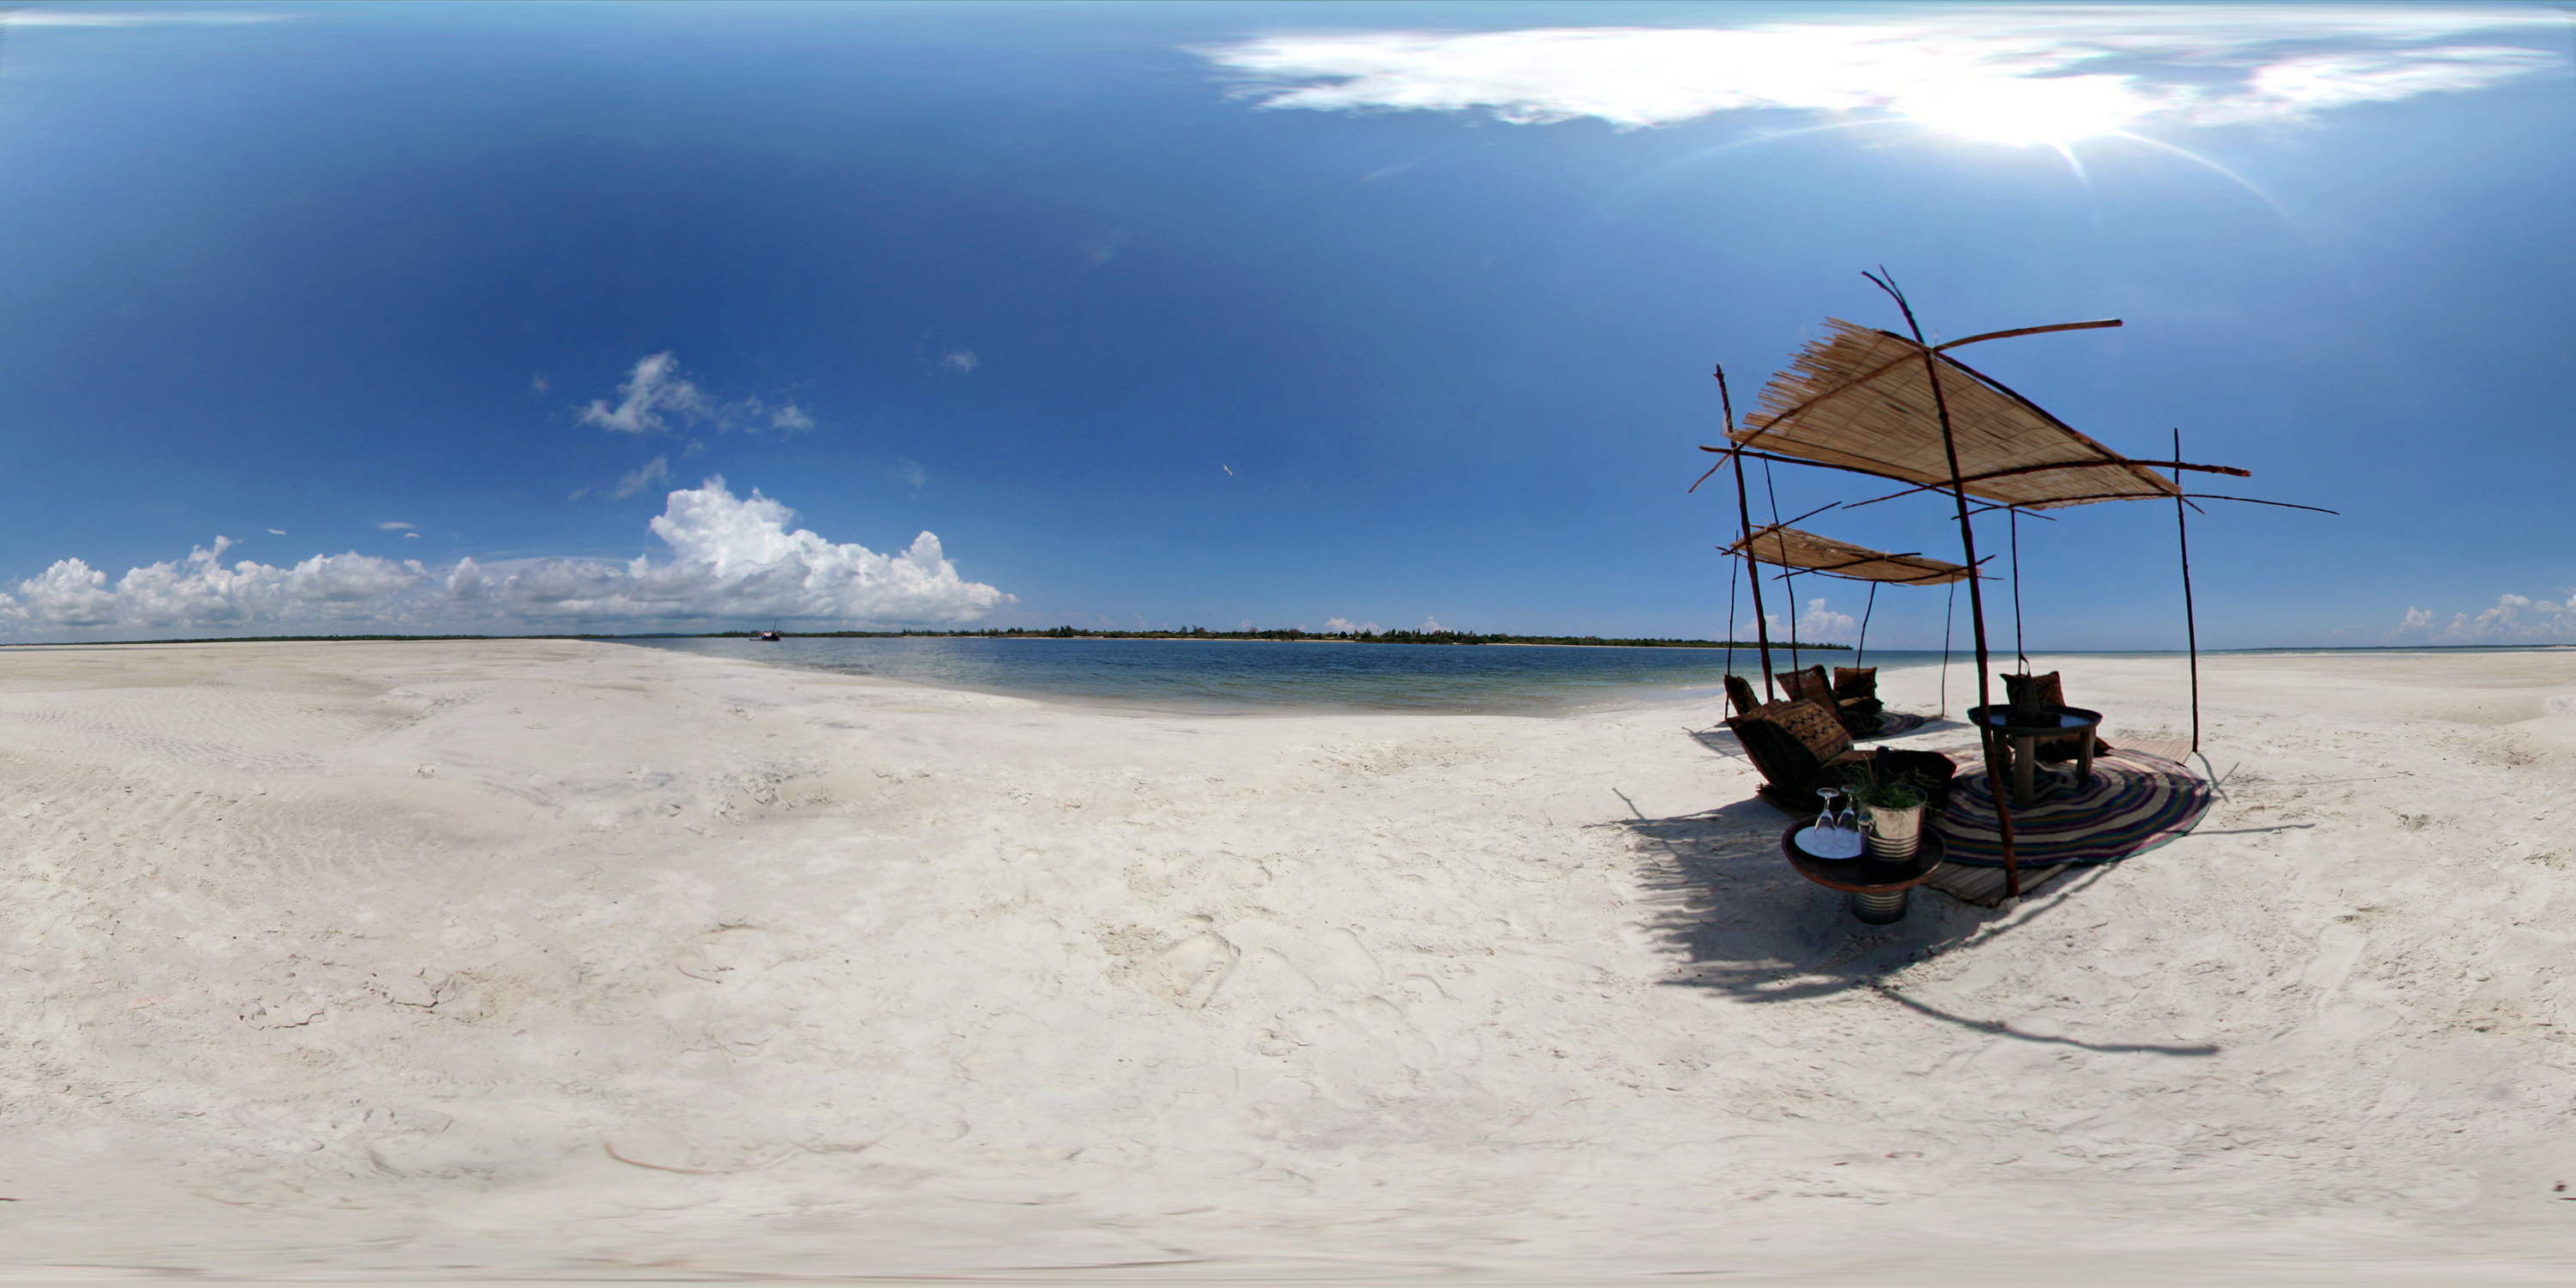 Sandbar at The Funzi Keys - Kenya